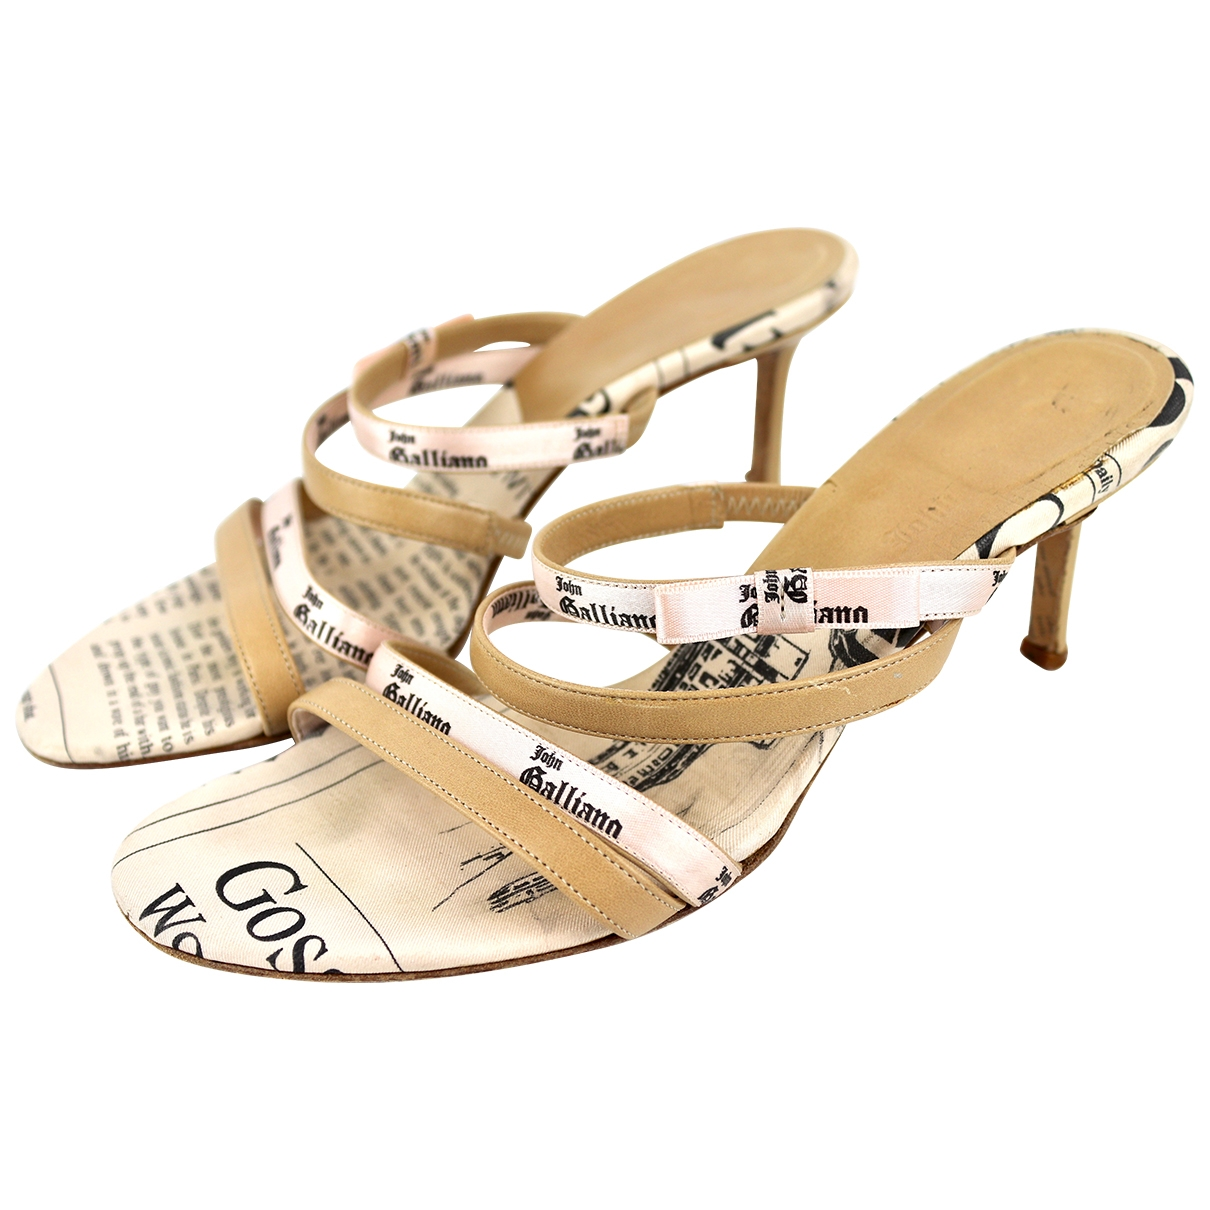 John Galliano \N Beige Leather Sandals for Women 37 EU